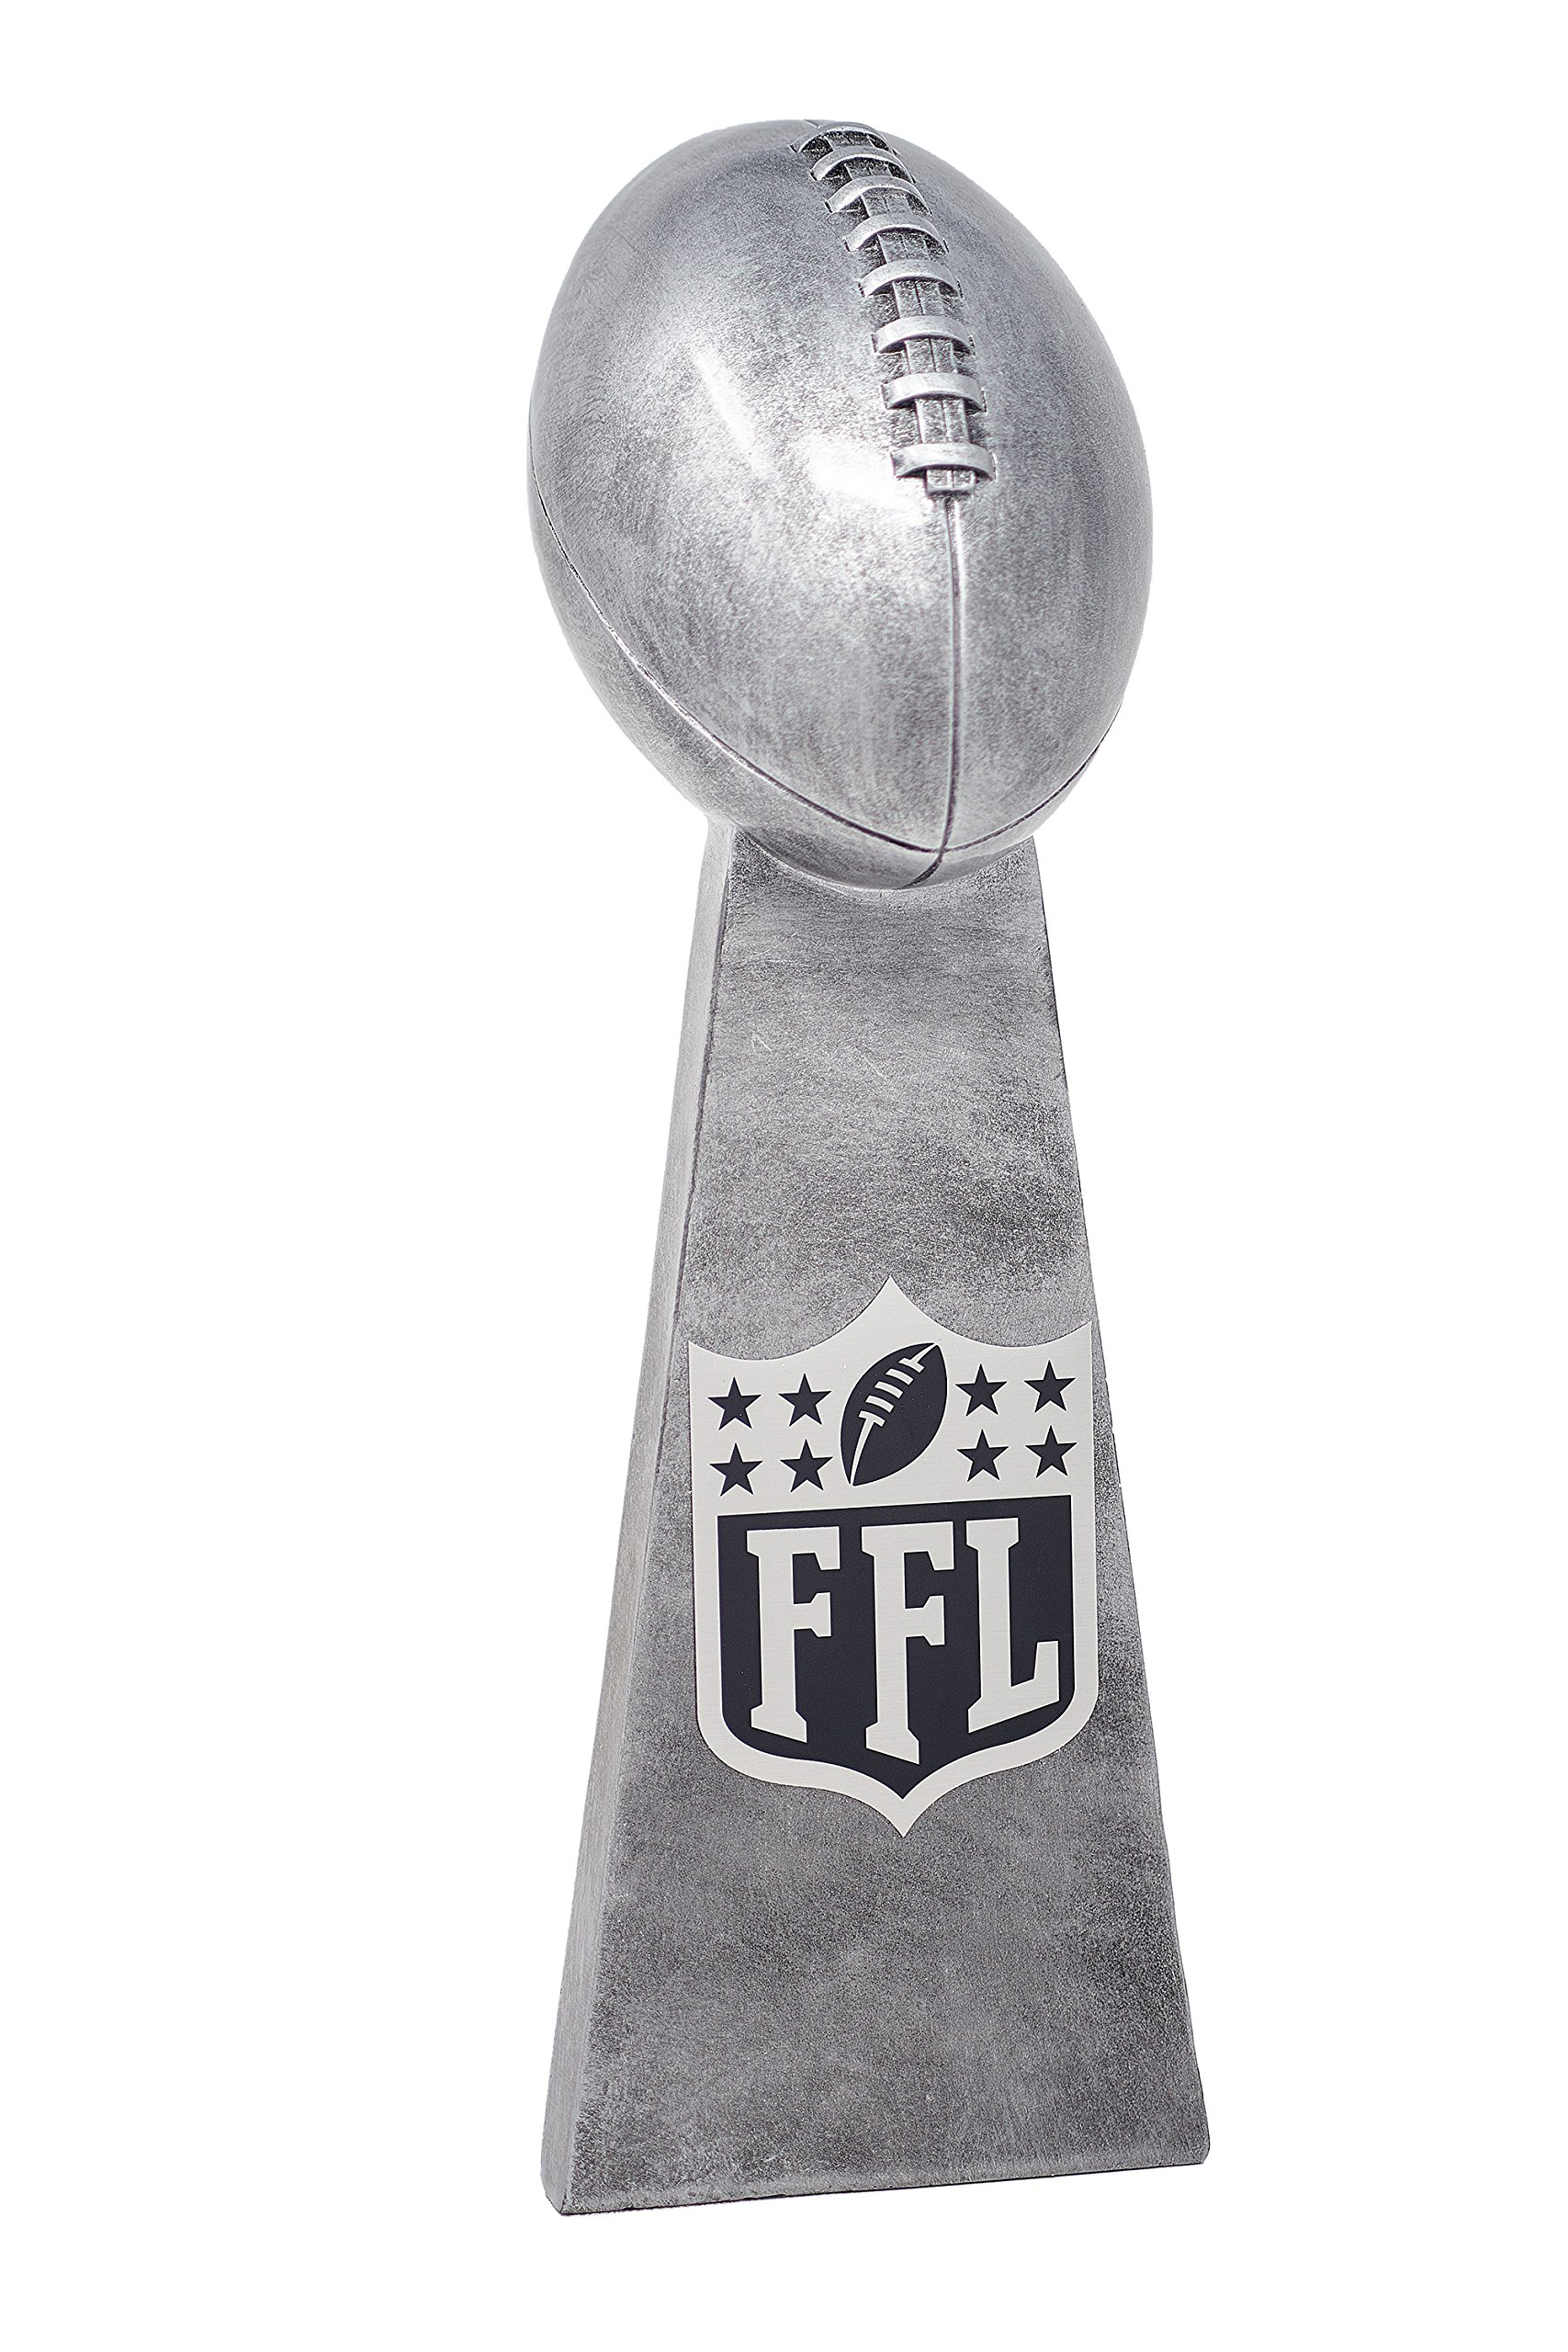 Fantasy Bros Ultimate Fantasy Football Trophy By Fantasy League Winner's Cup Lombardi Trophy Elegant & Durable Design | Gold/Silver (Silver, 14.5 Inch) by Fantasy Bros